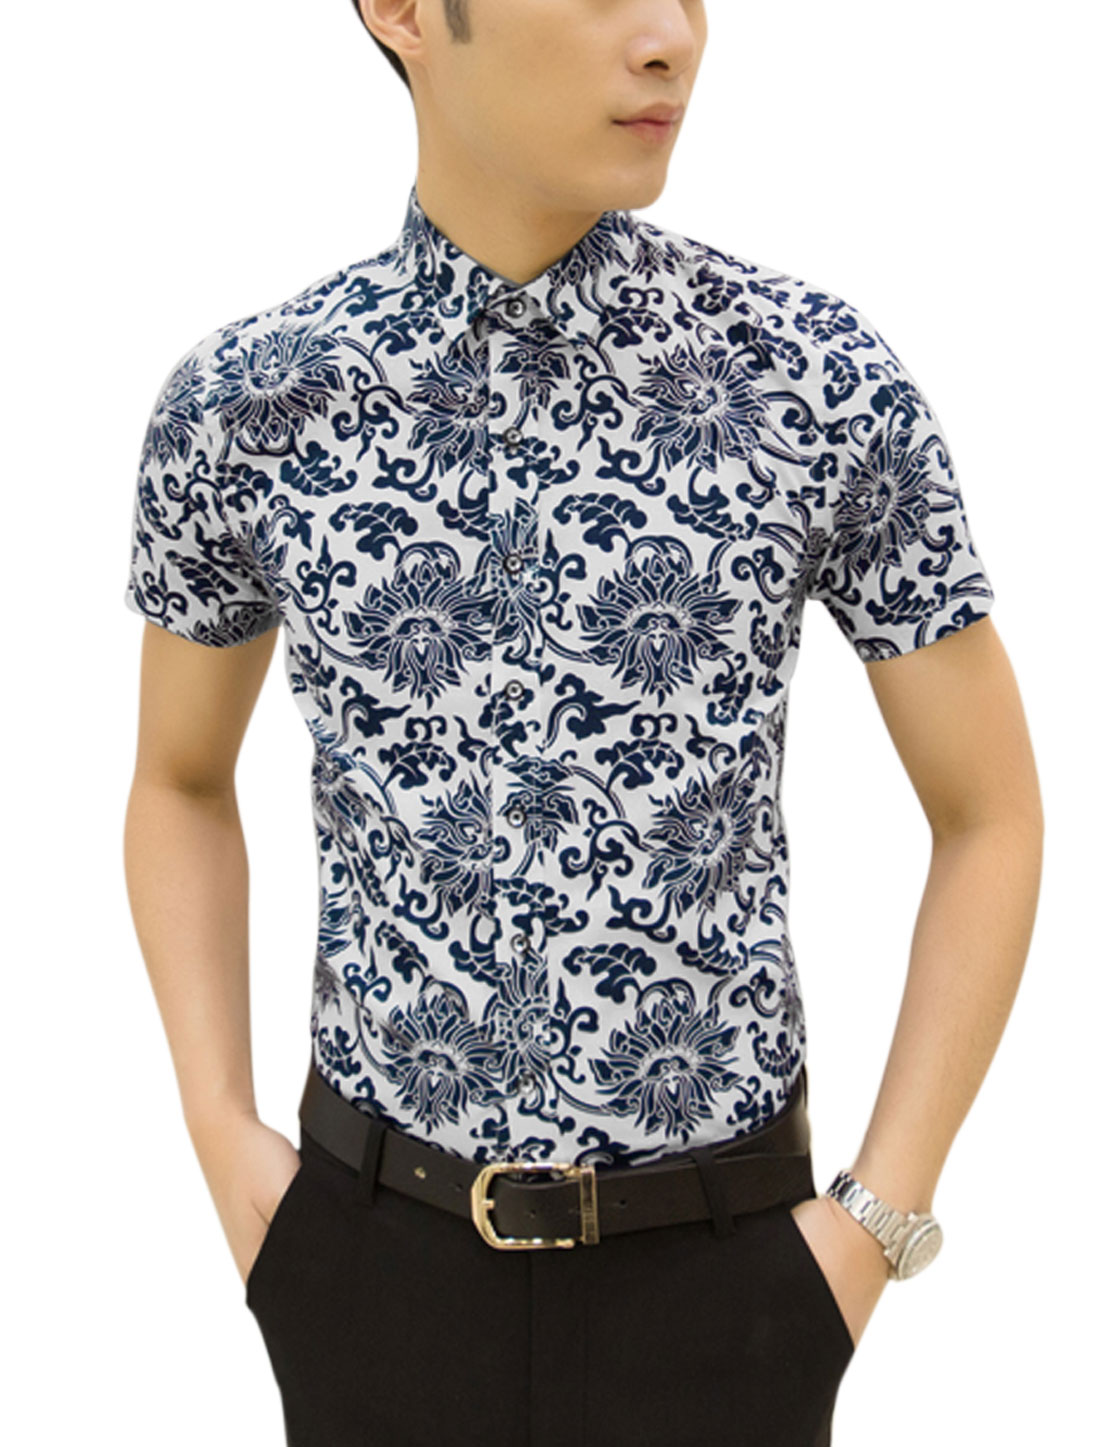 Man Floral Prints Short Sleeves Casual Shirt Navy Blue White M